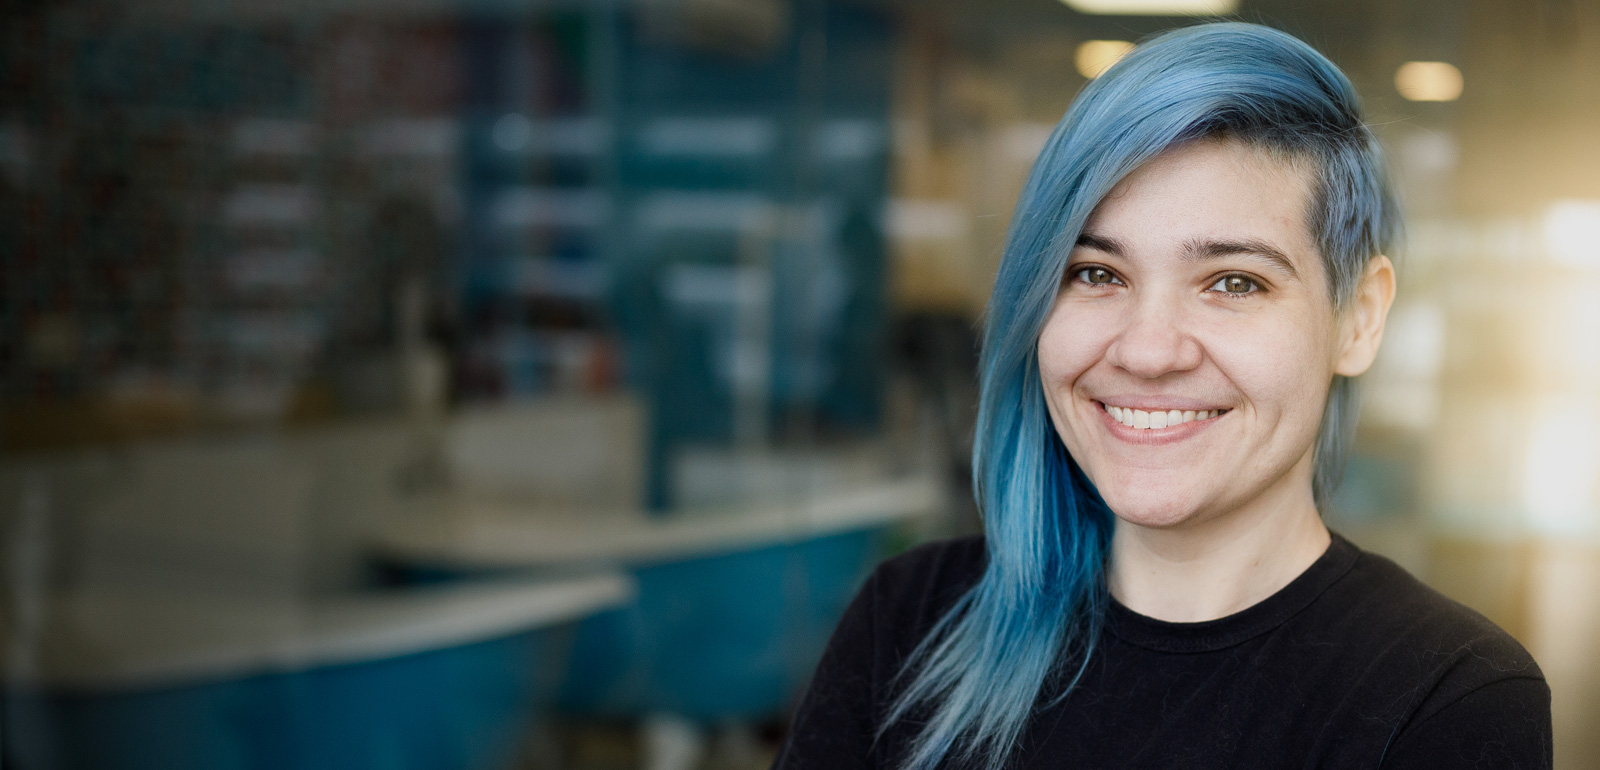 Woman with blue hair smiles